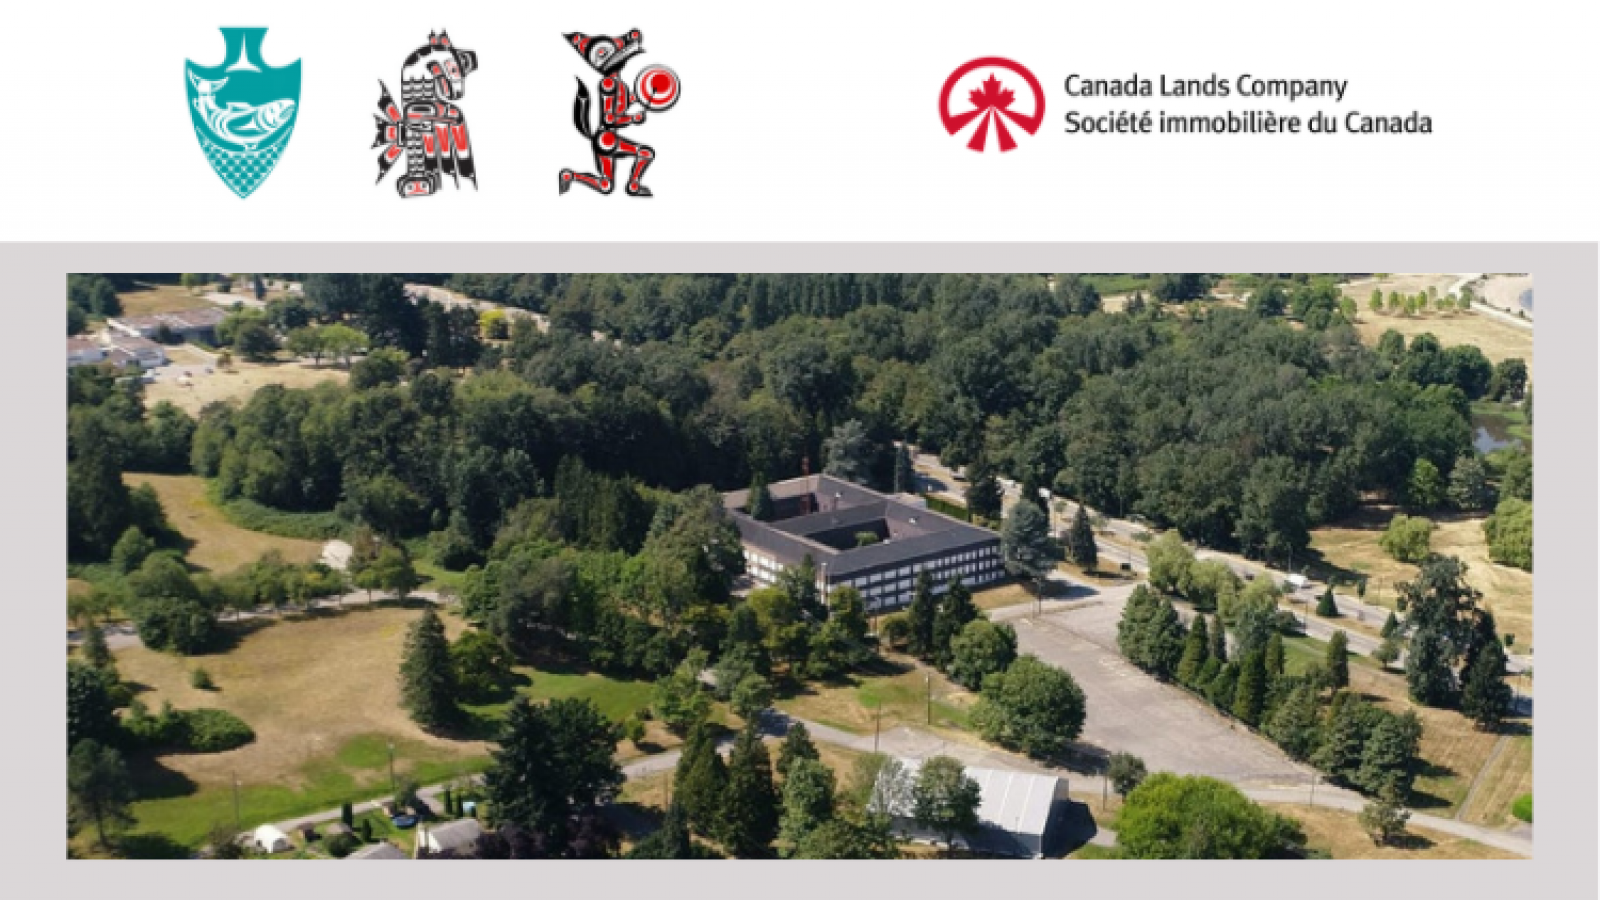 Musqueam Squamish and Tsleil-Waututh Logos, next to Canada Lands Corporation Logo and an aerial shot of Jericho Lands